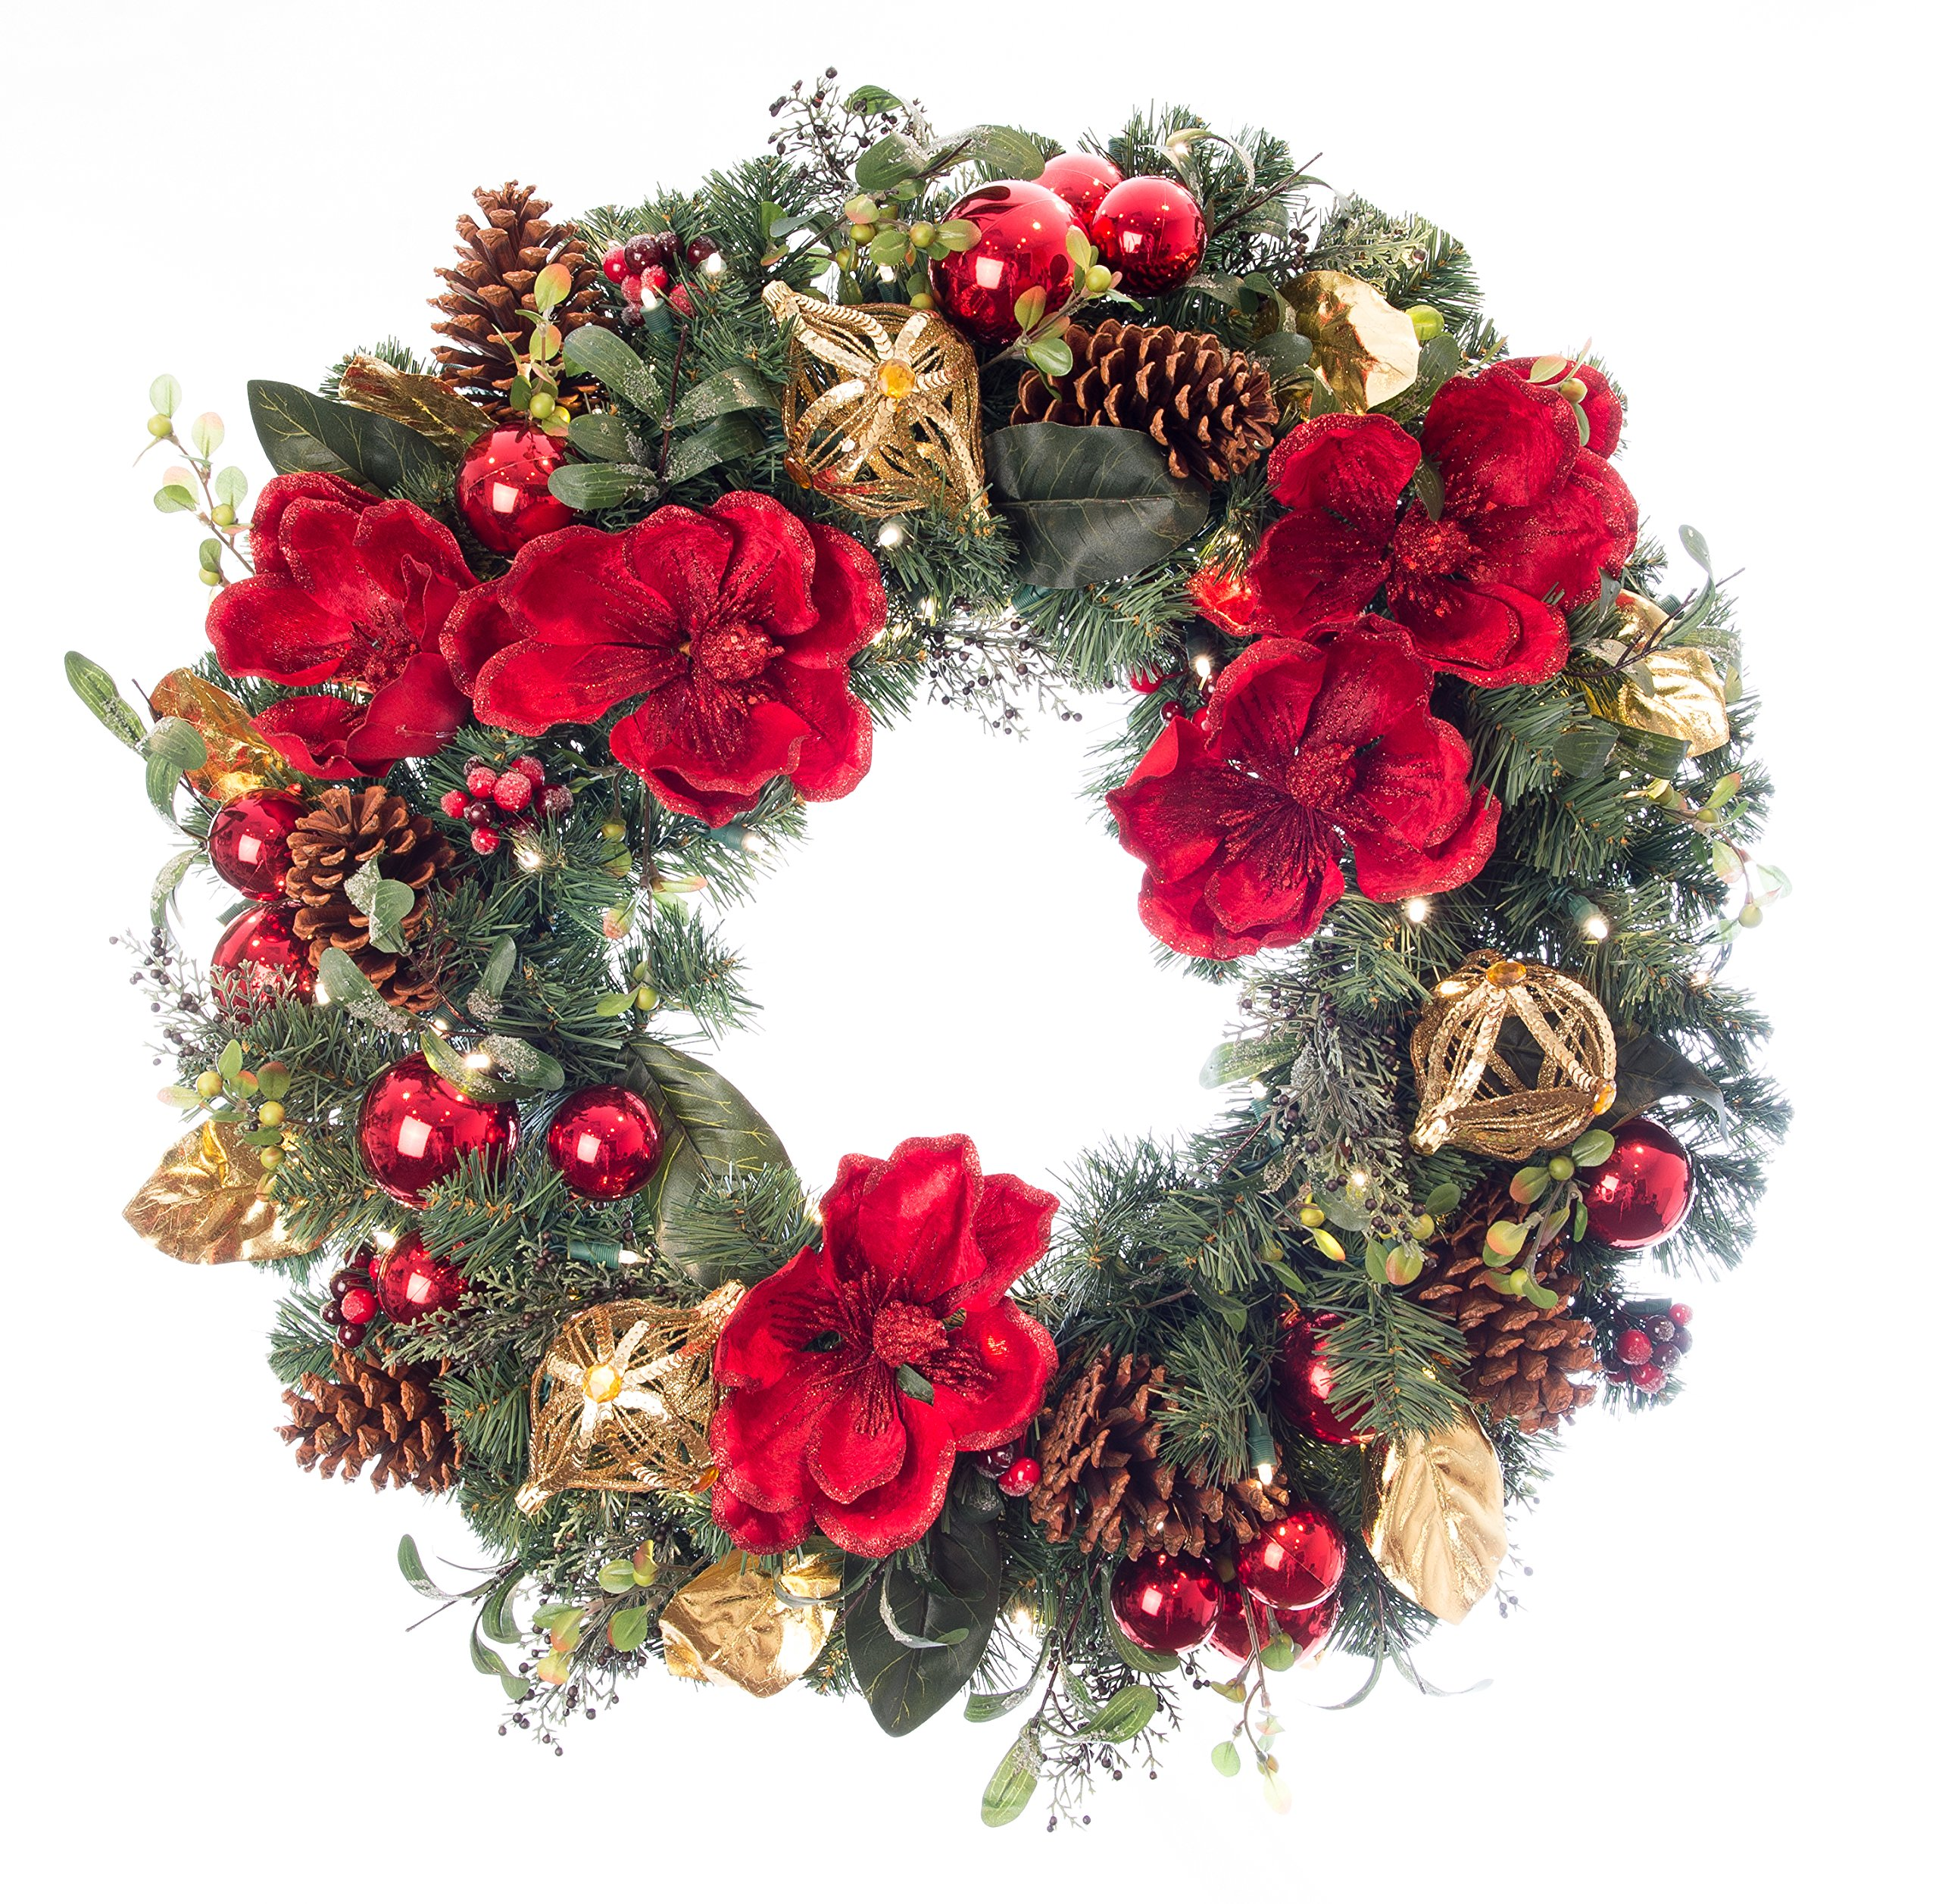 Magnificent Magnolia Red 30 '' Pre-lit Decorated Wreath by Village Lighting